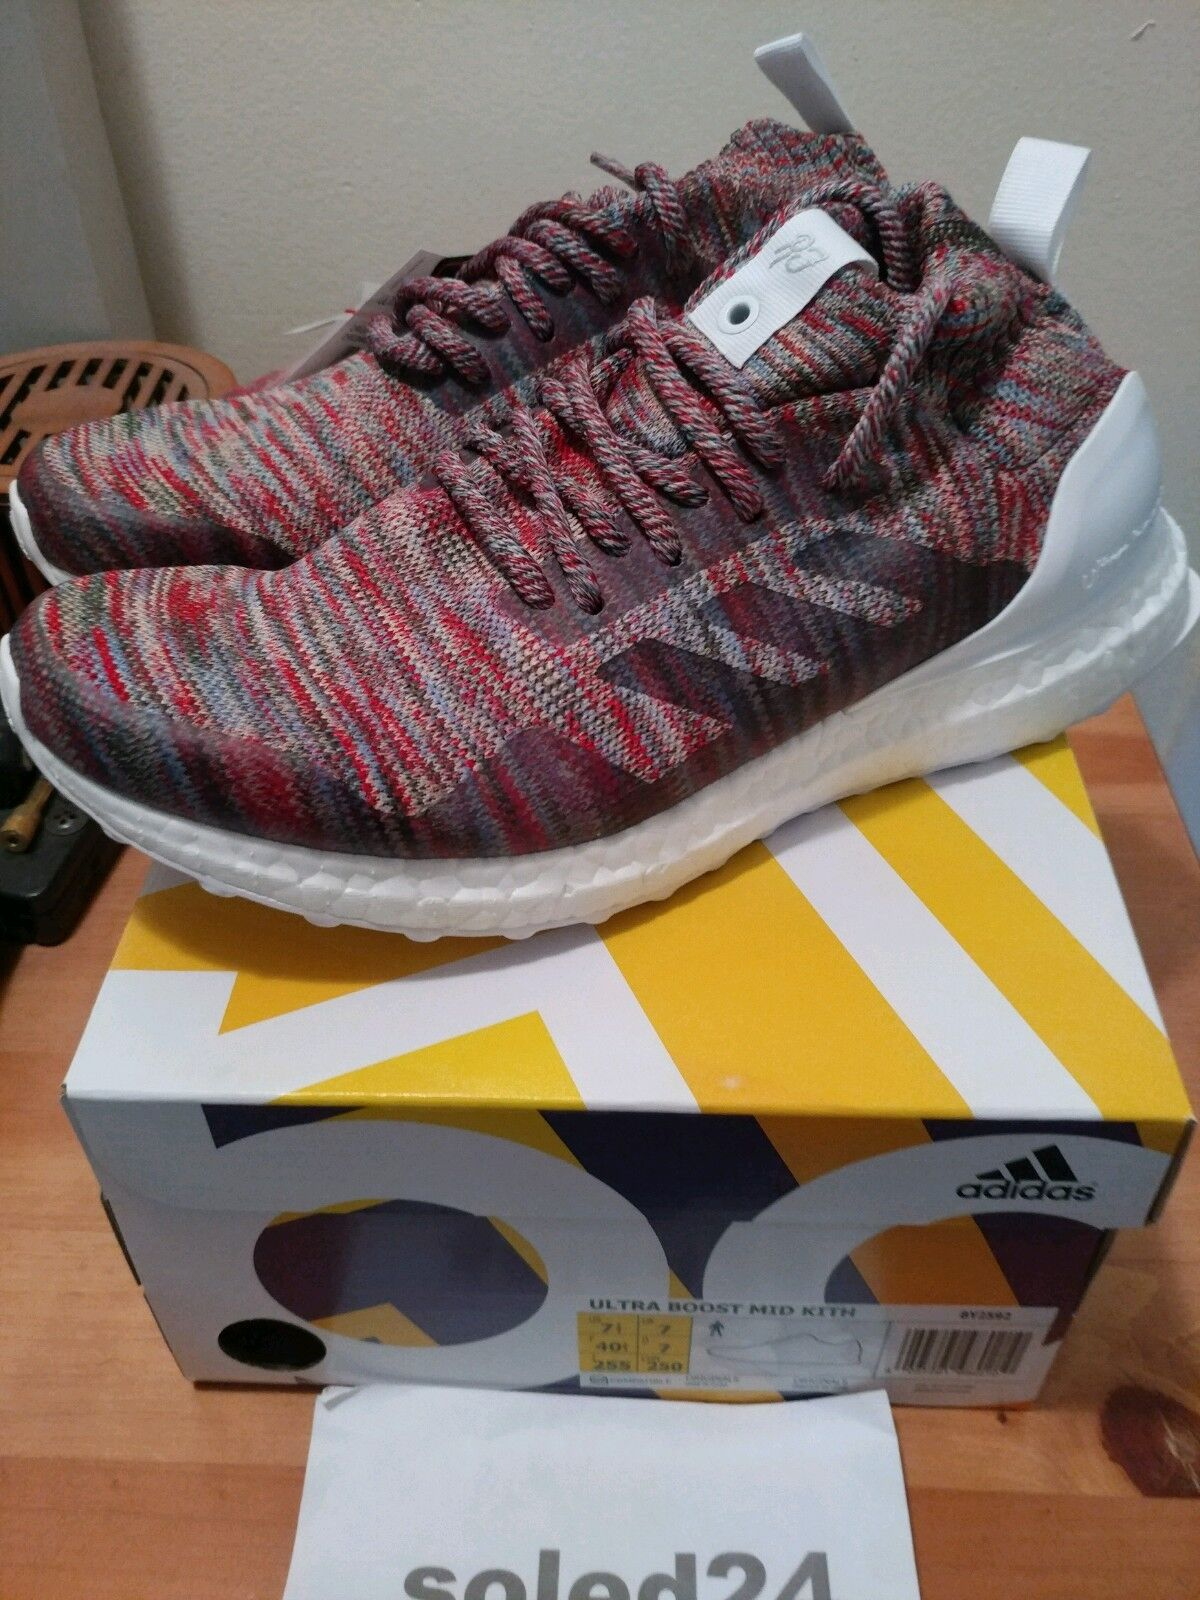 "566660391 KITH Ultra Boost Mid ""Aspen"" US 7.5 Consortium BY2592 Adidas x ..."